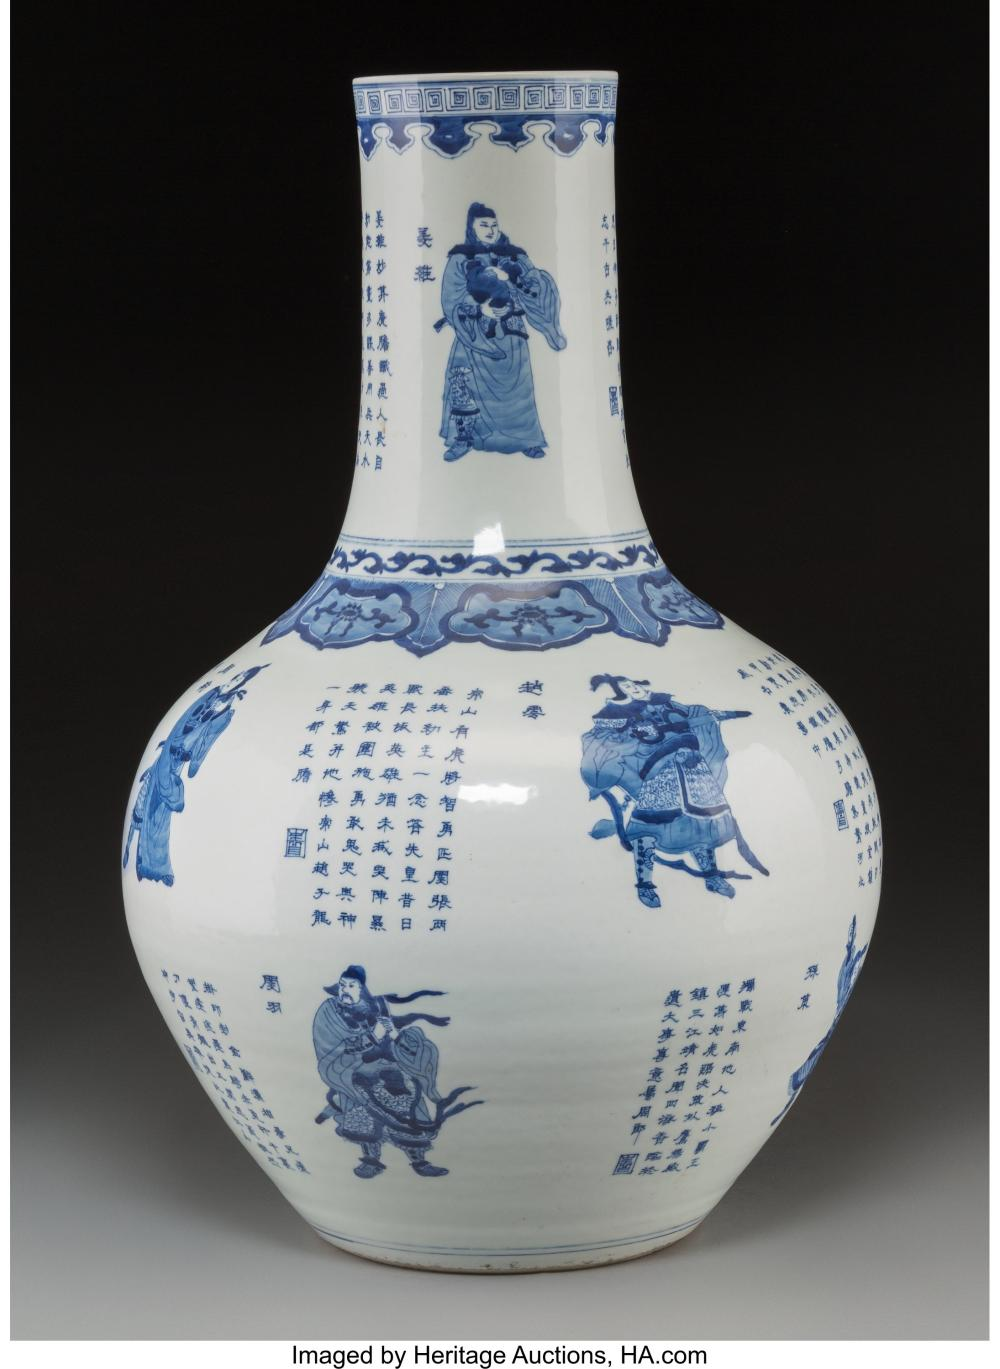 Lot 21274: A Large Chinese Blue and White Porcelain Bottle Vase with Prose and Warrior Moti